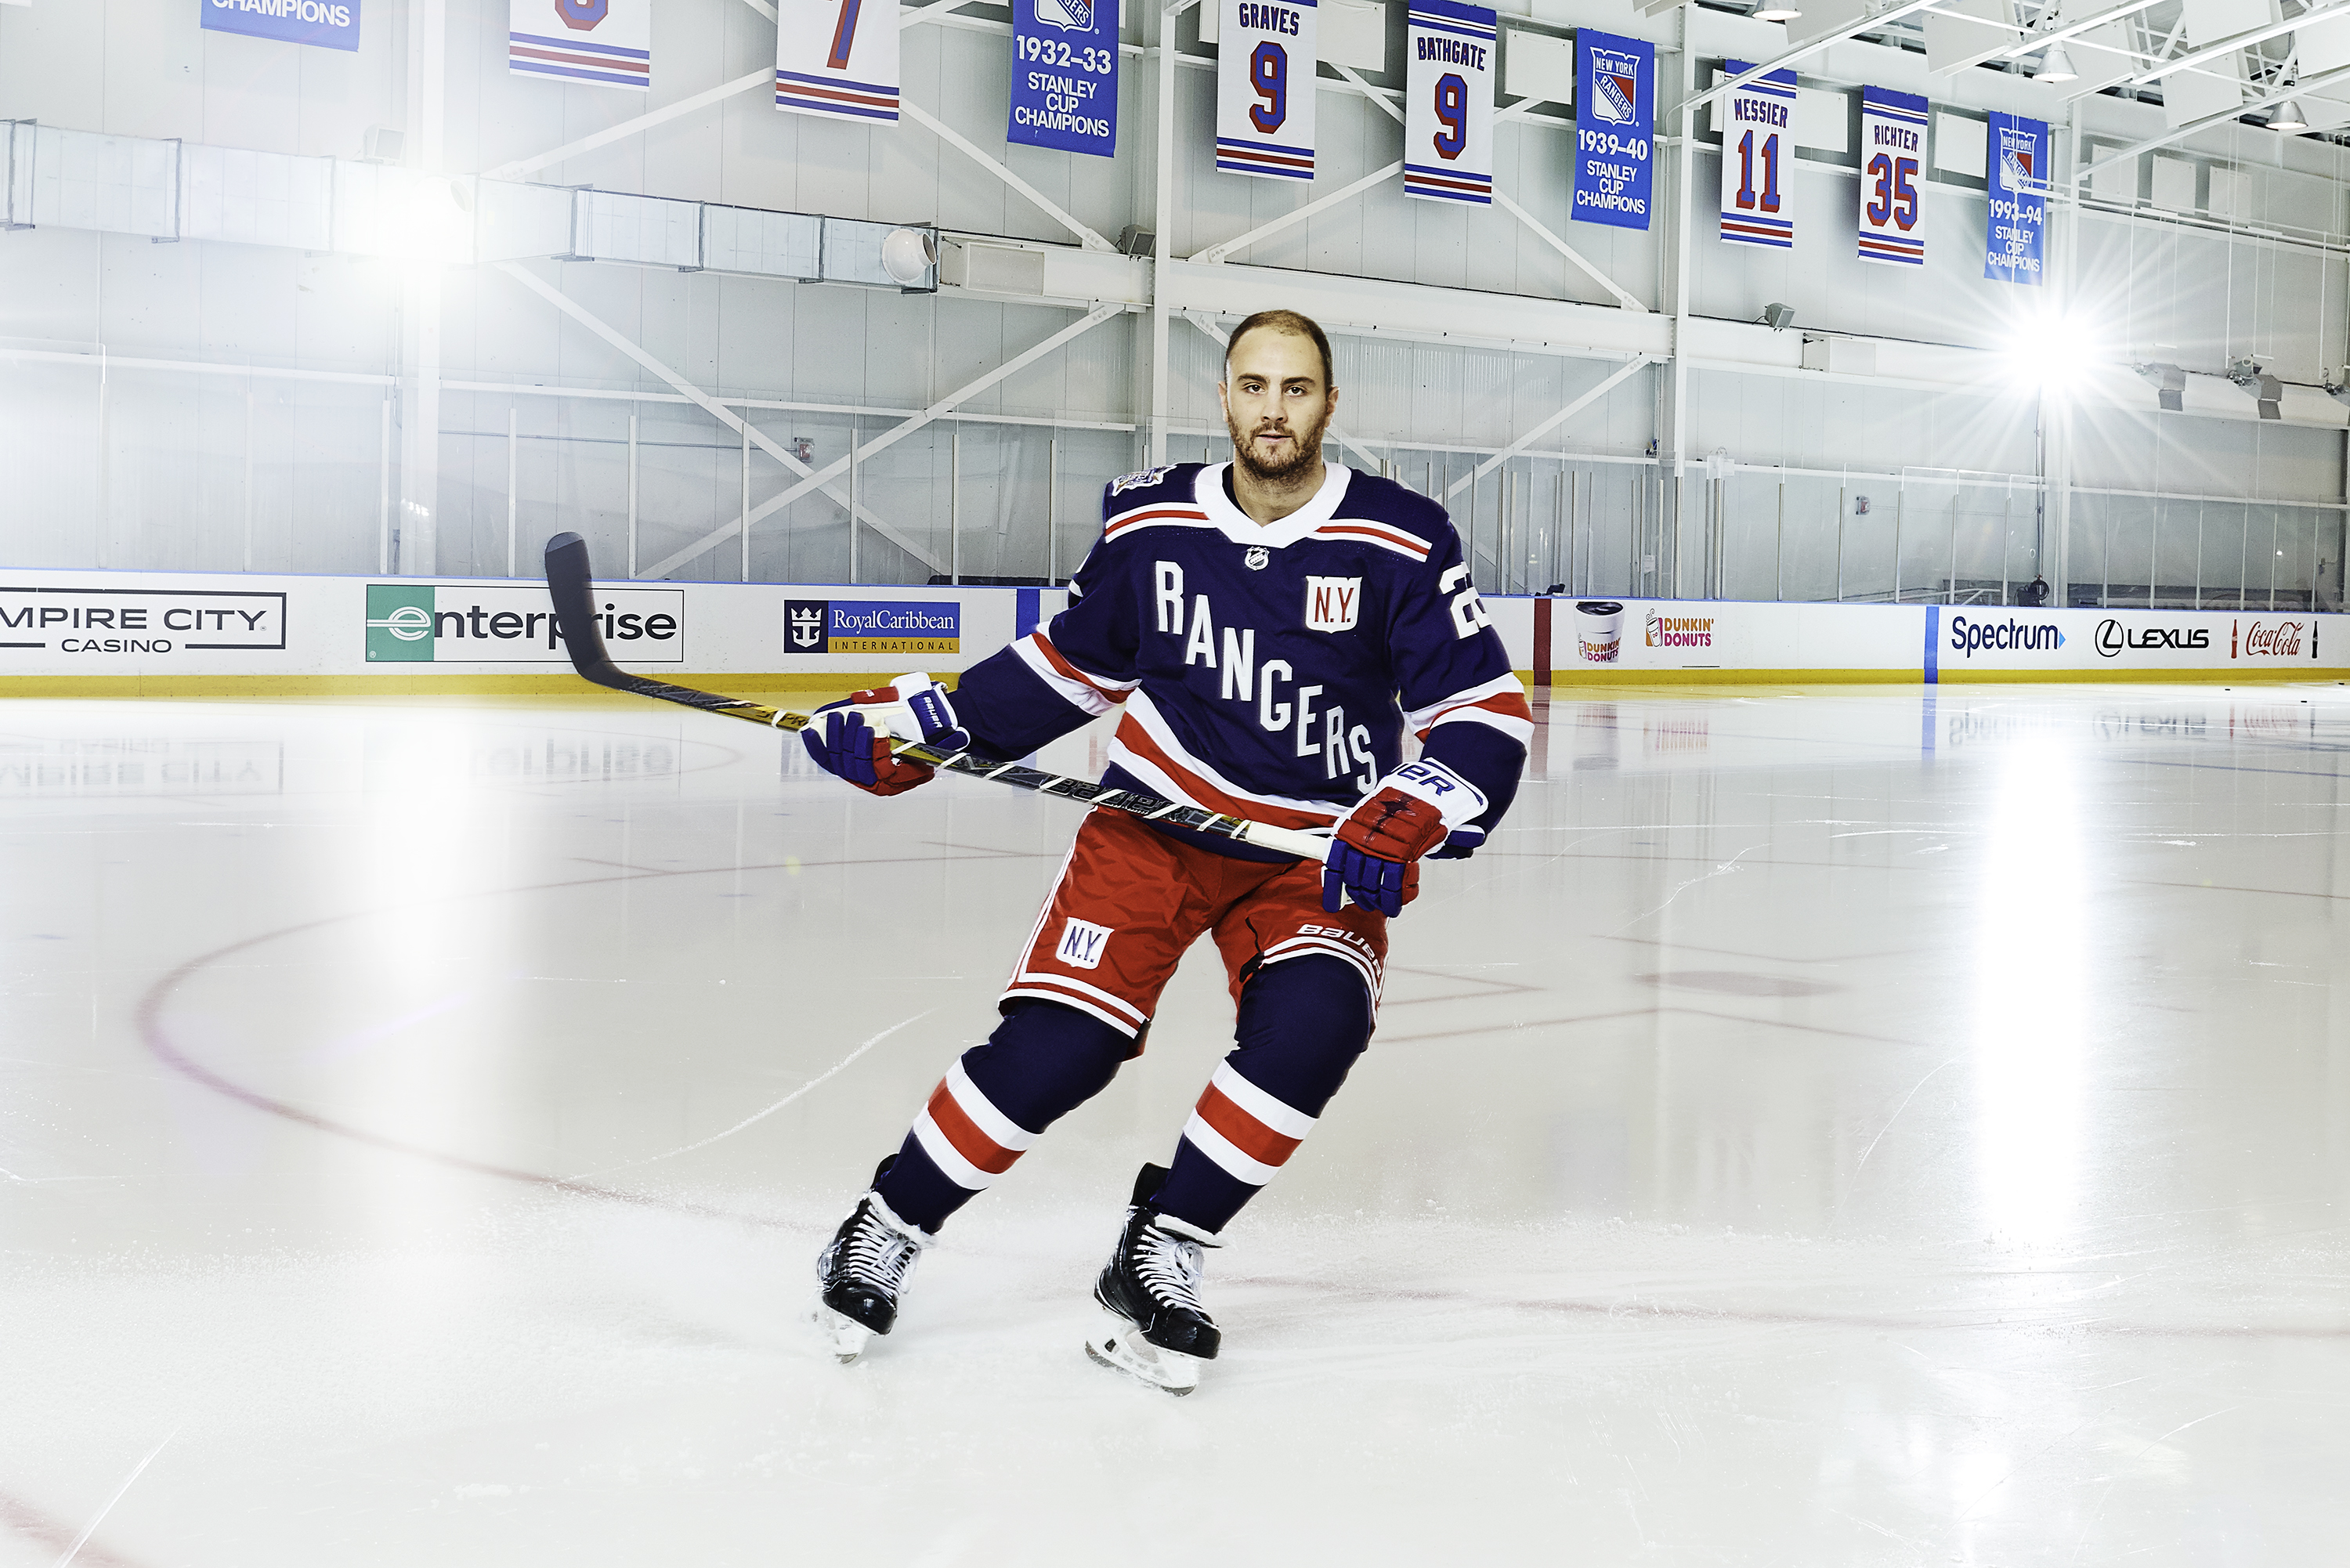 The Rangers  NHL Winter Classic adidas adizero Authentic Pro jersey  features the team s traditional color scheme of red 6267fba01